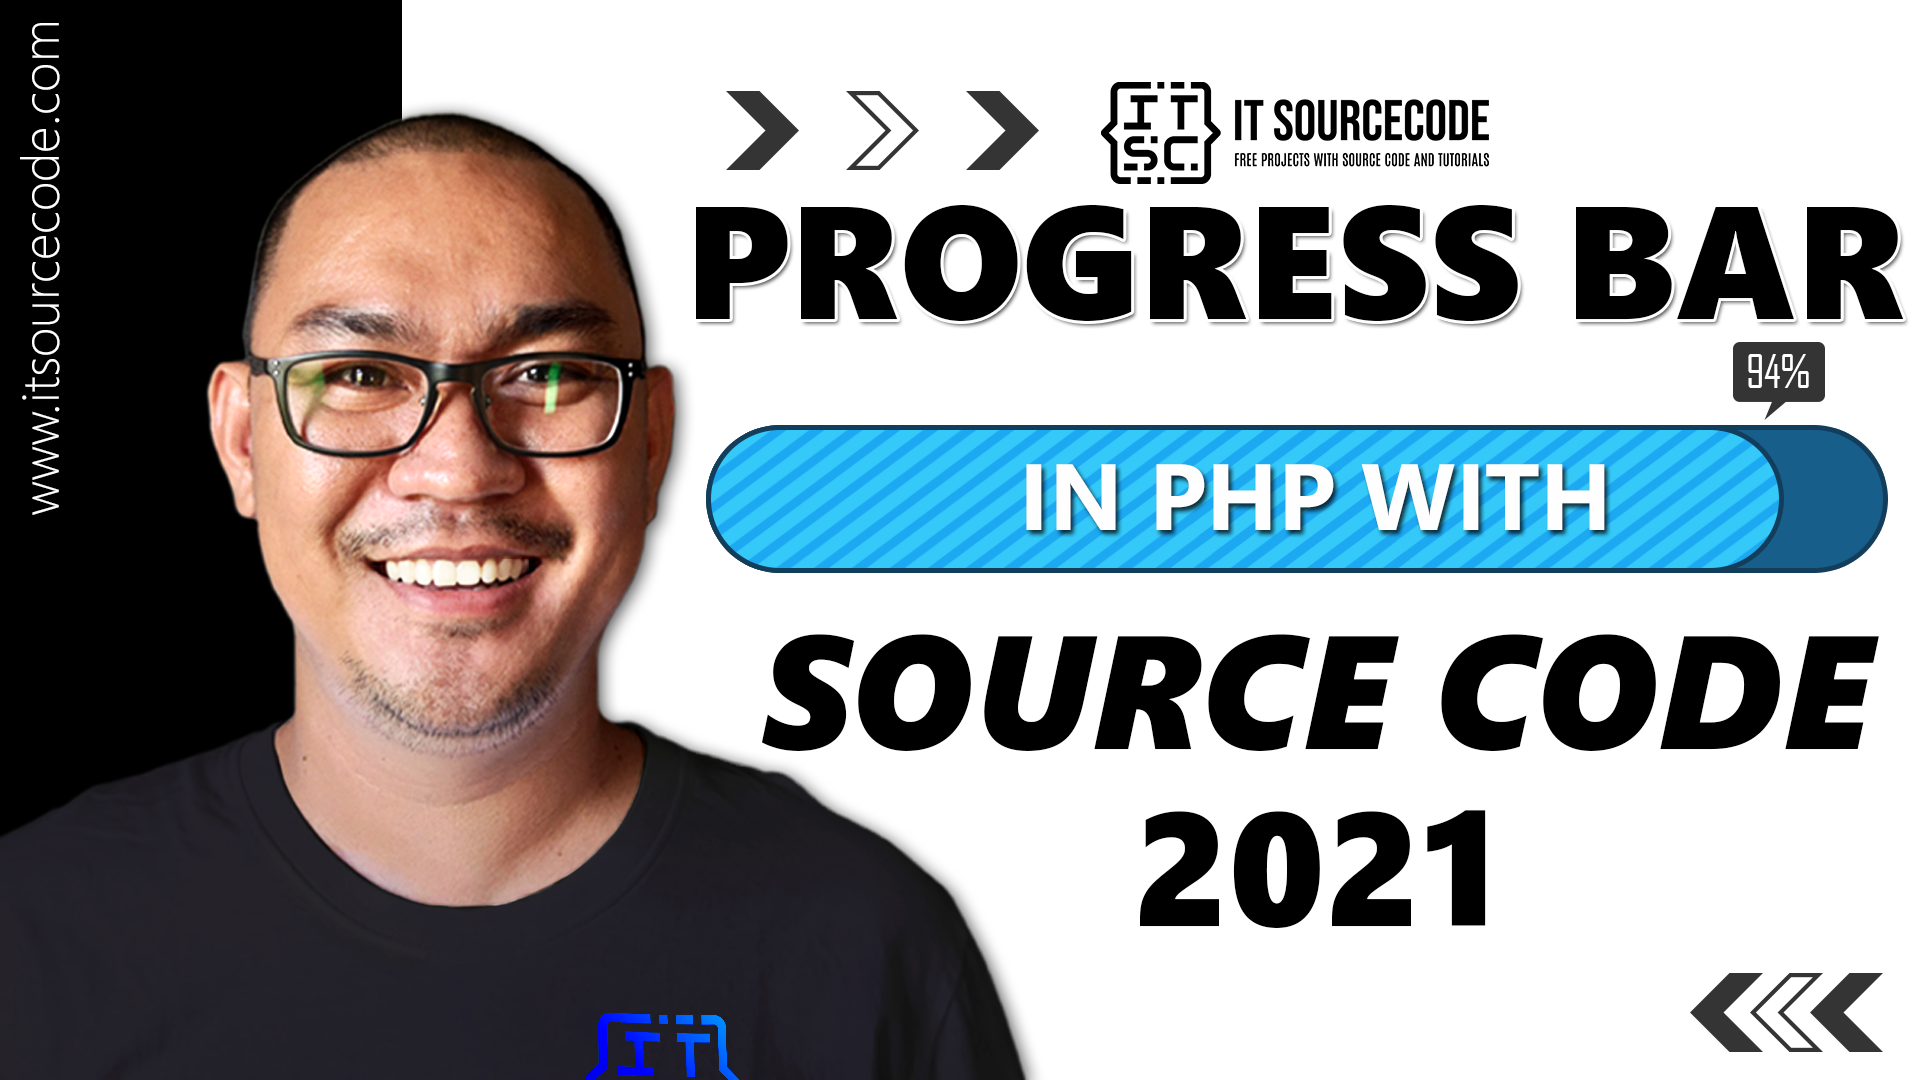 Progress Bar in PHP with Source Code 2021